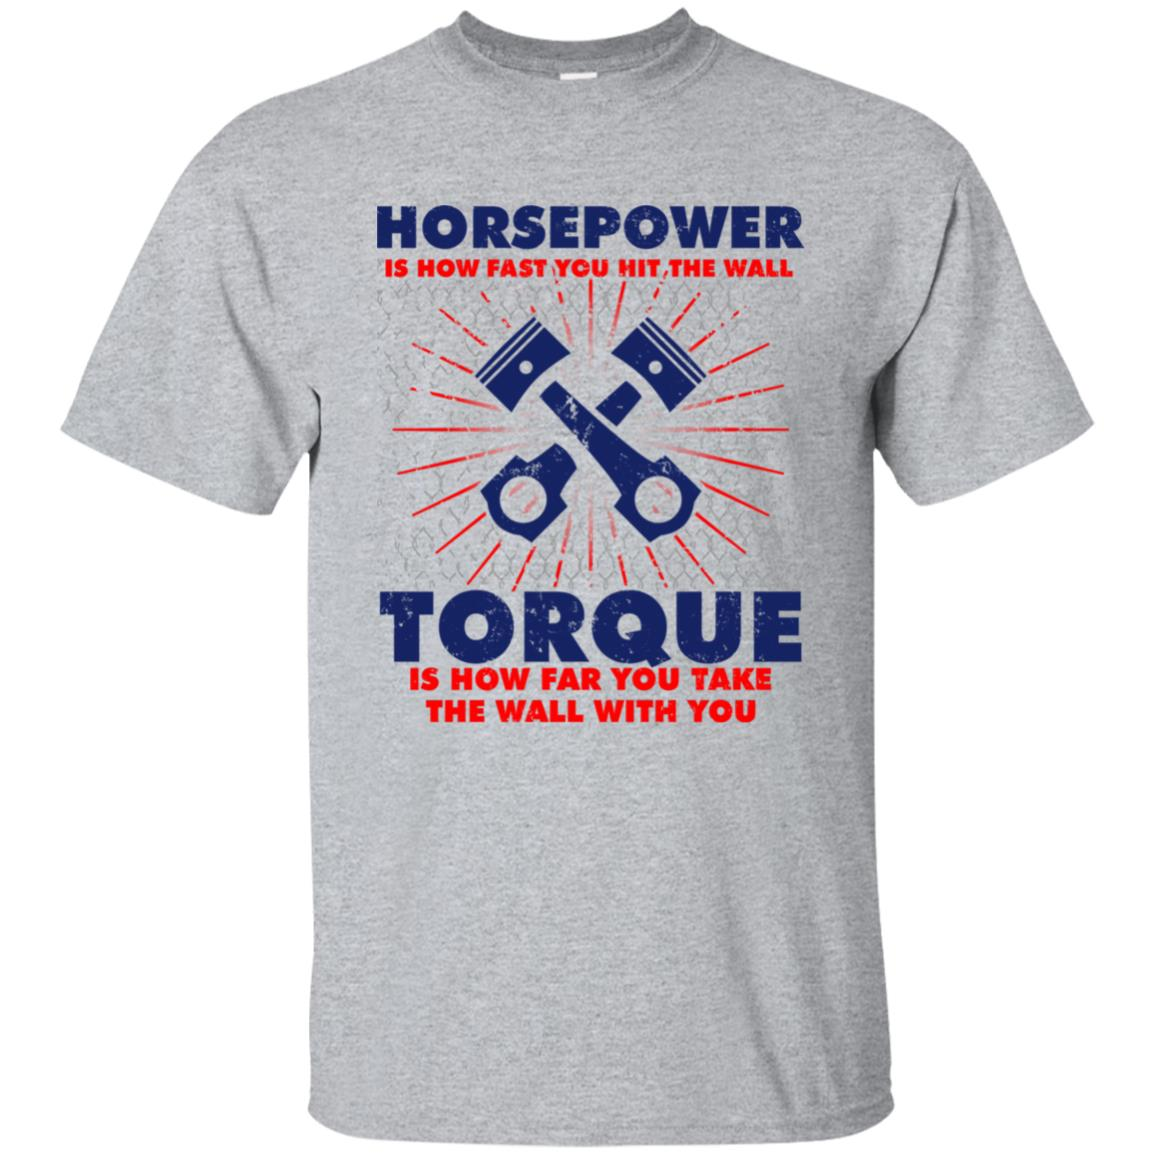 Horsepower vs Torque Diesel Car Mechanic Funny Quote Unisex Short Sleeve